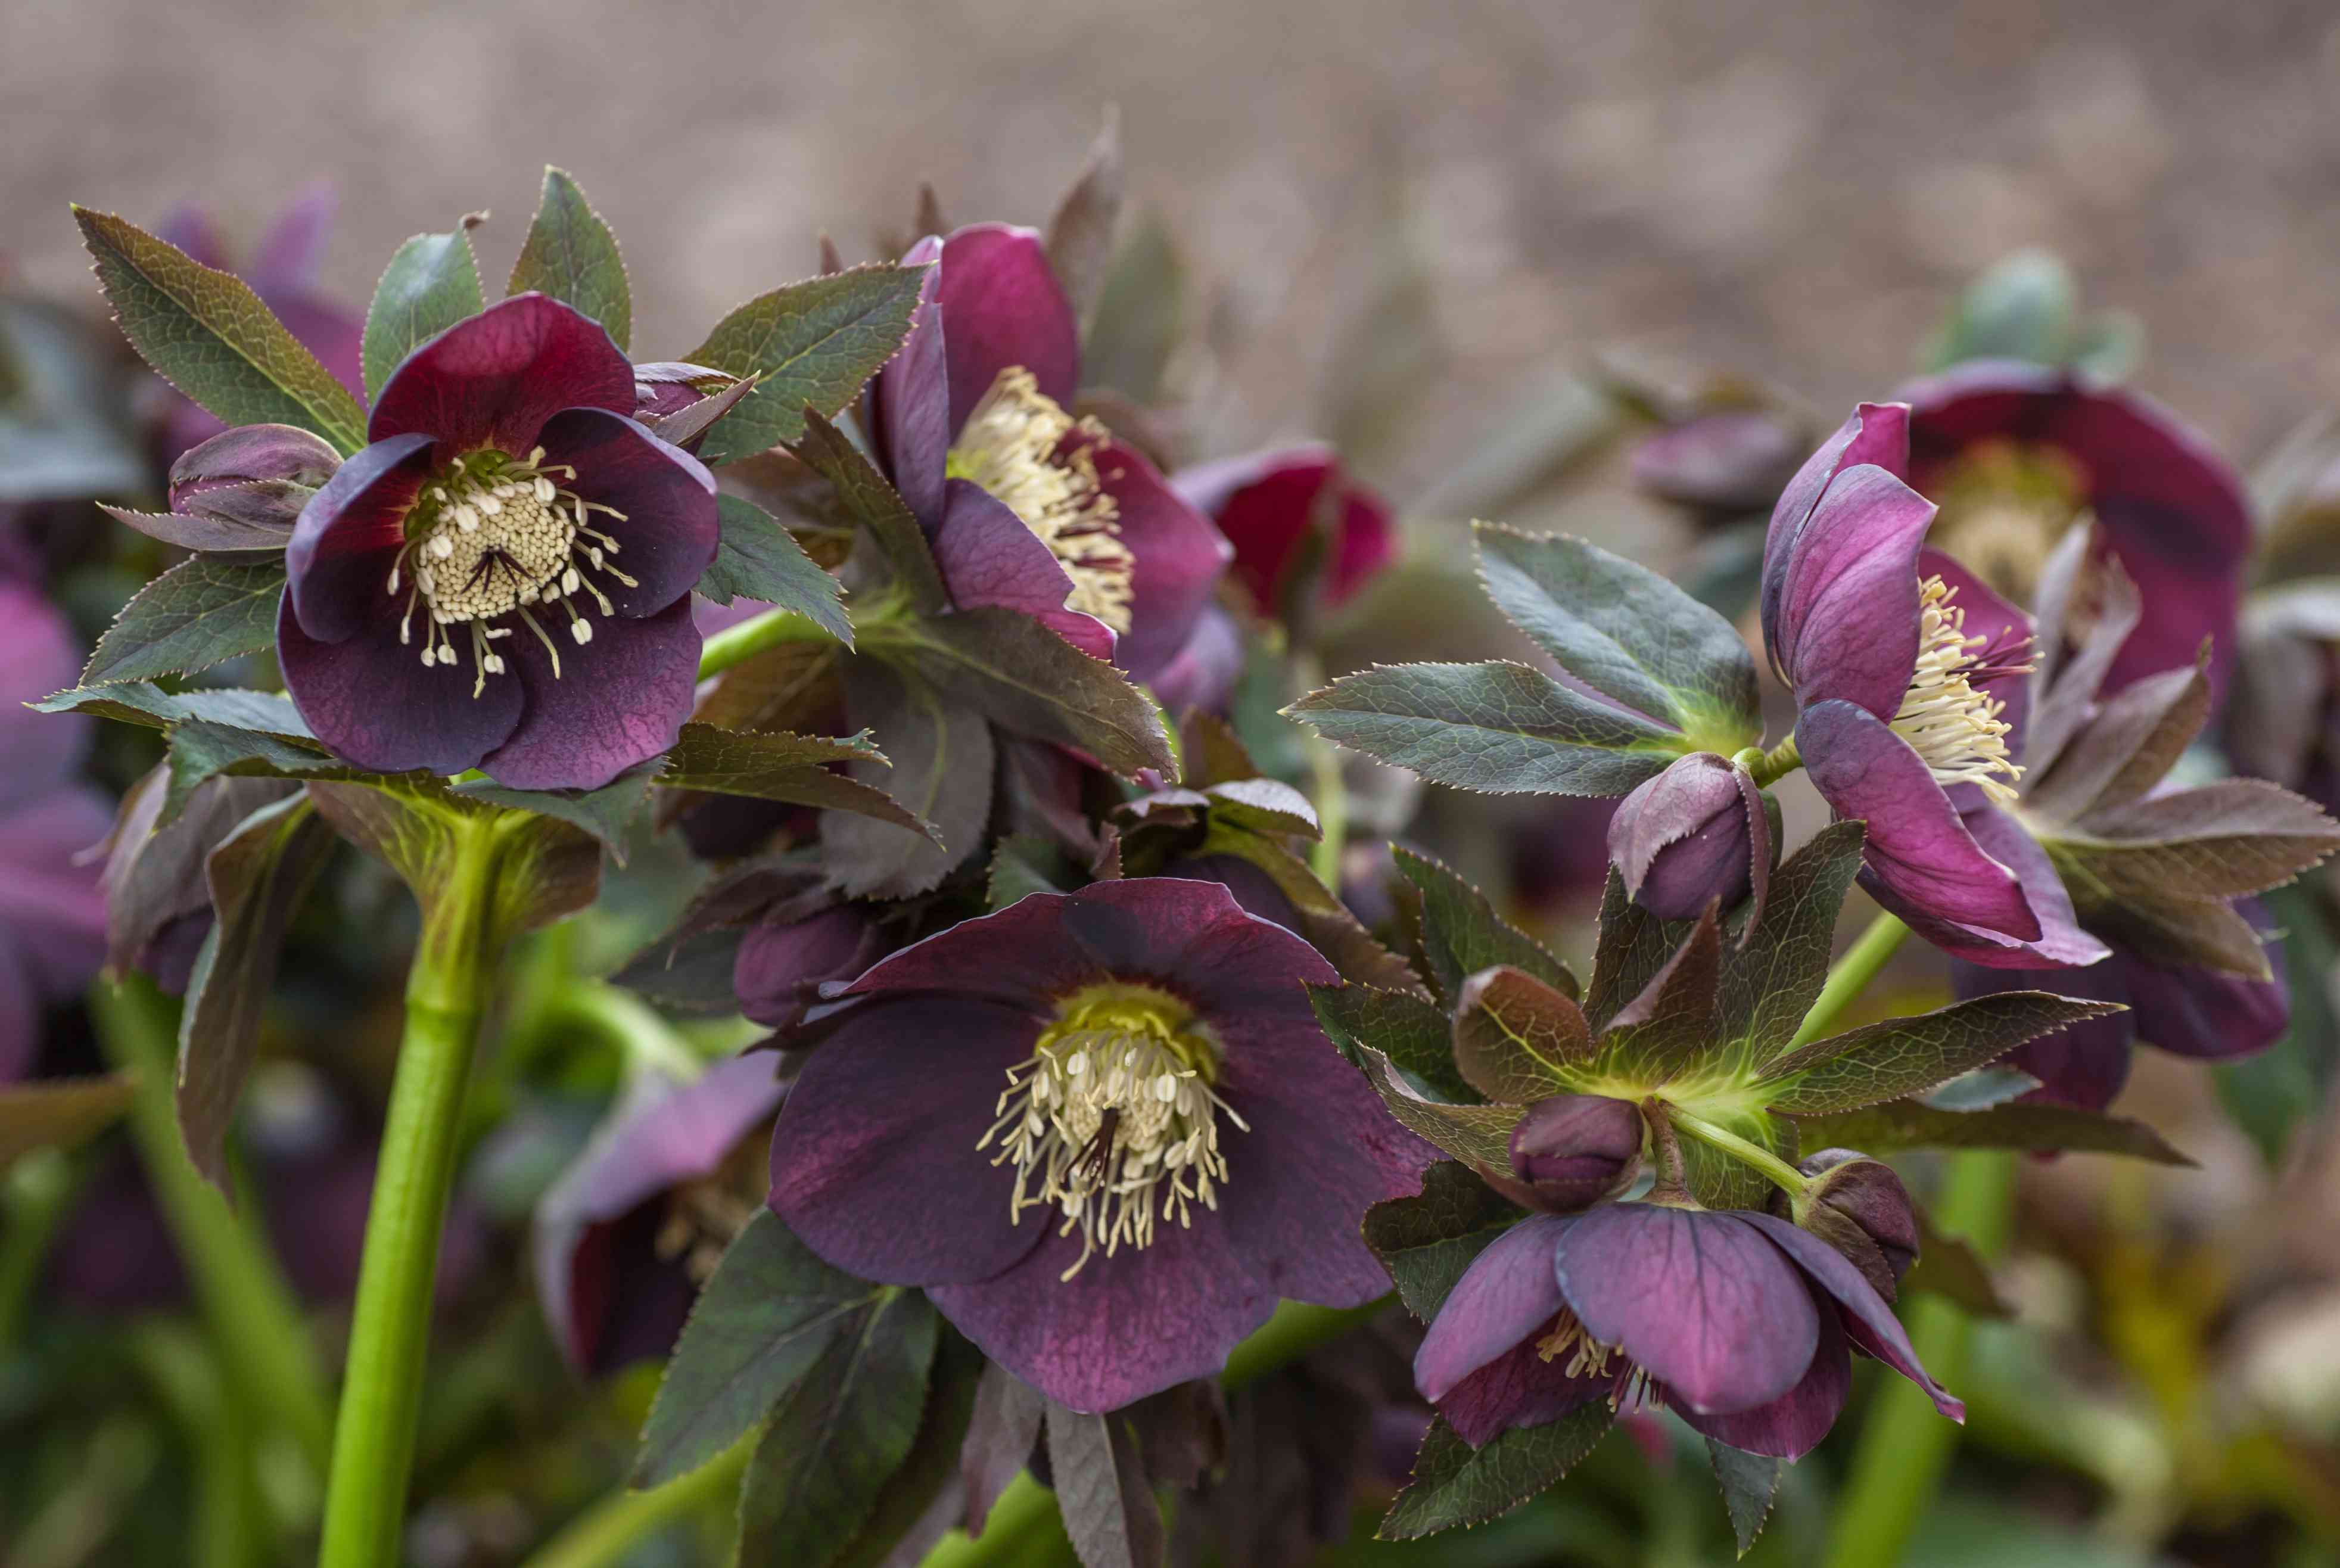 Hellebore plants with purple flowers and green stems